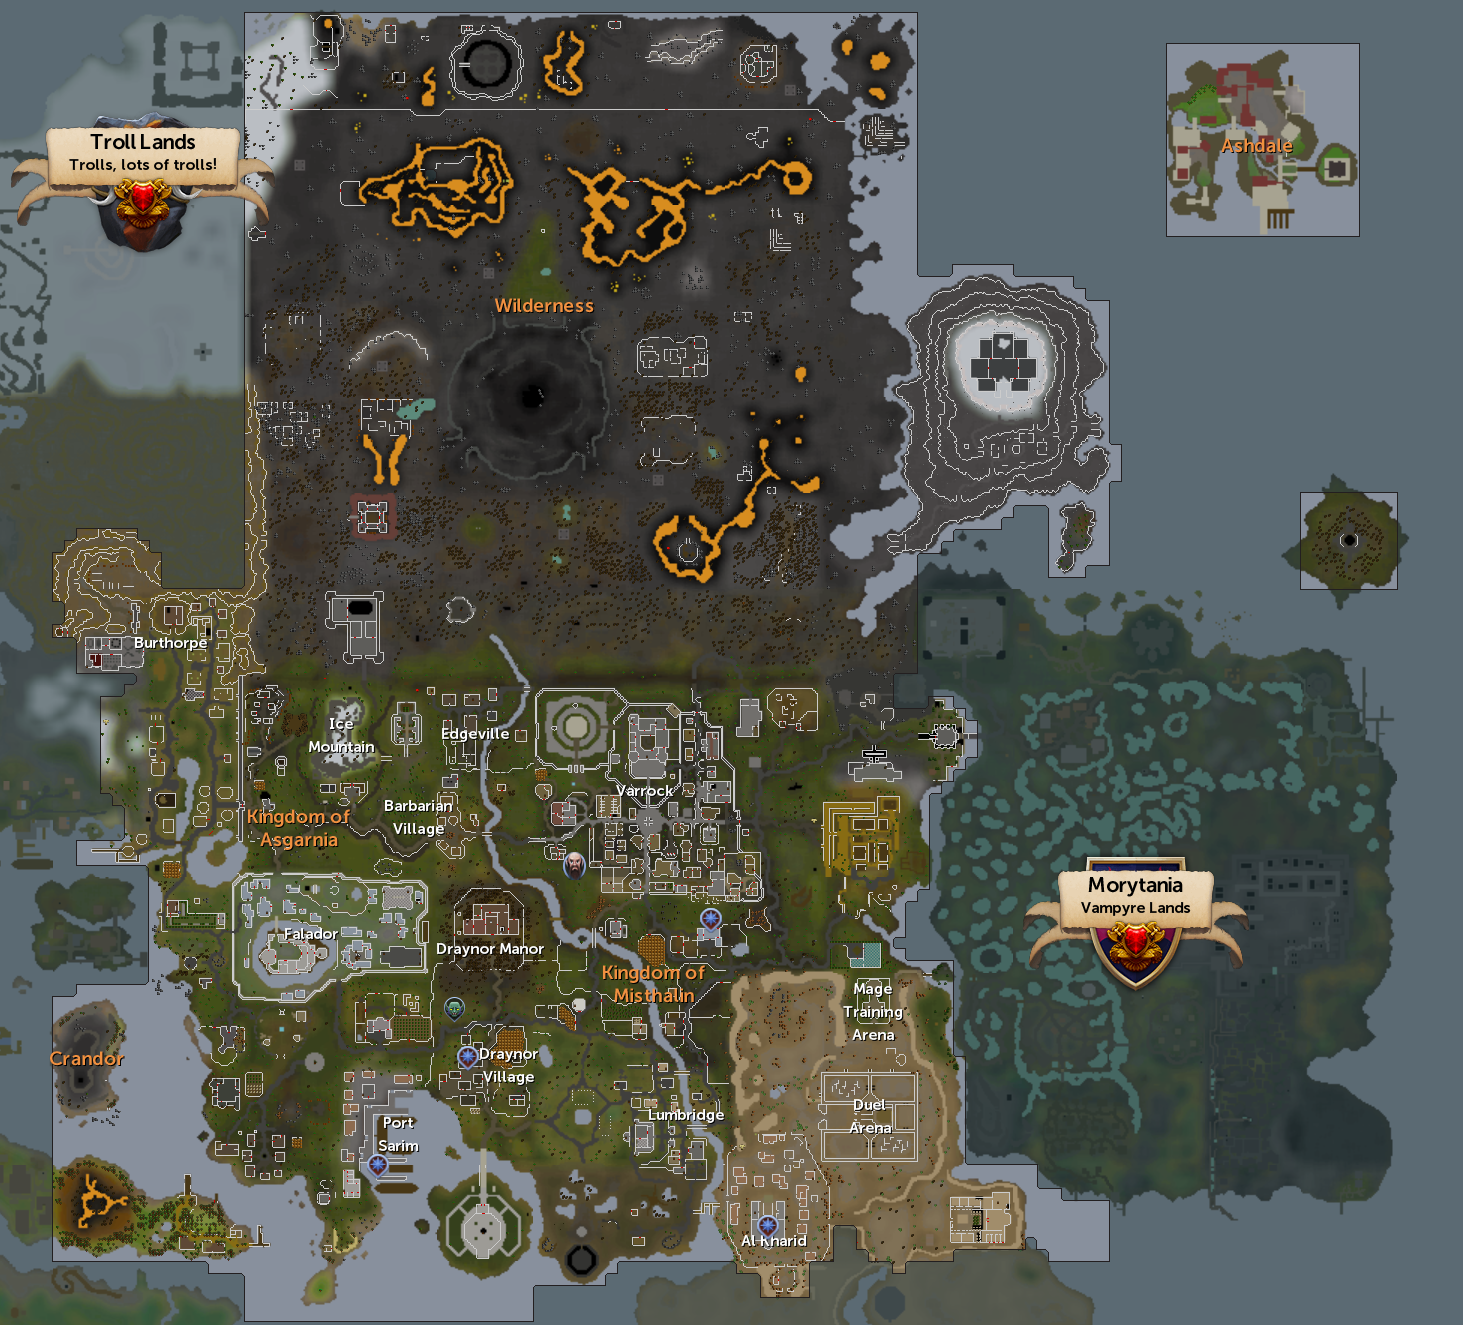 RuneScape Free Map.png - Freemap PNG